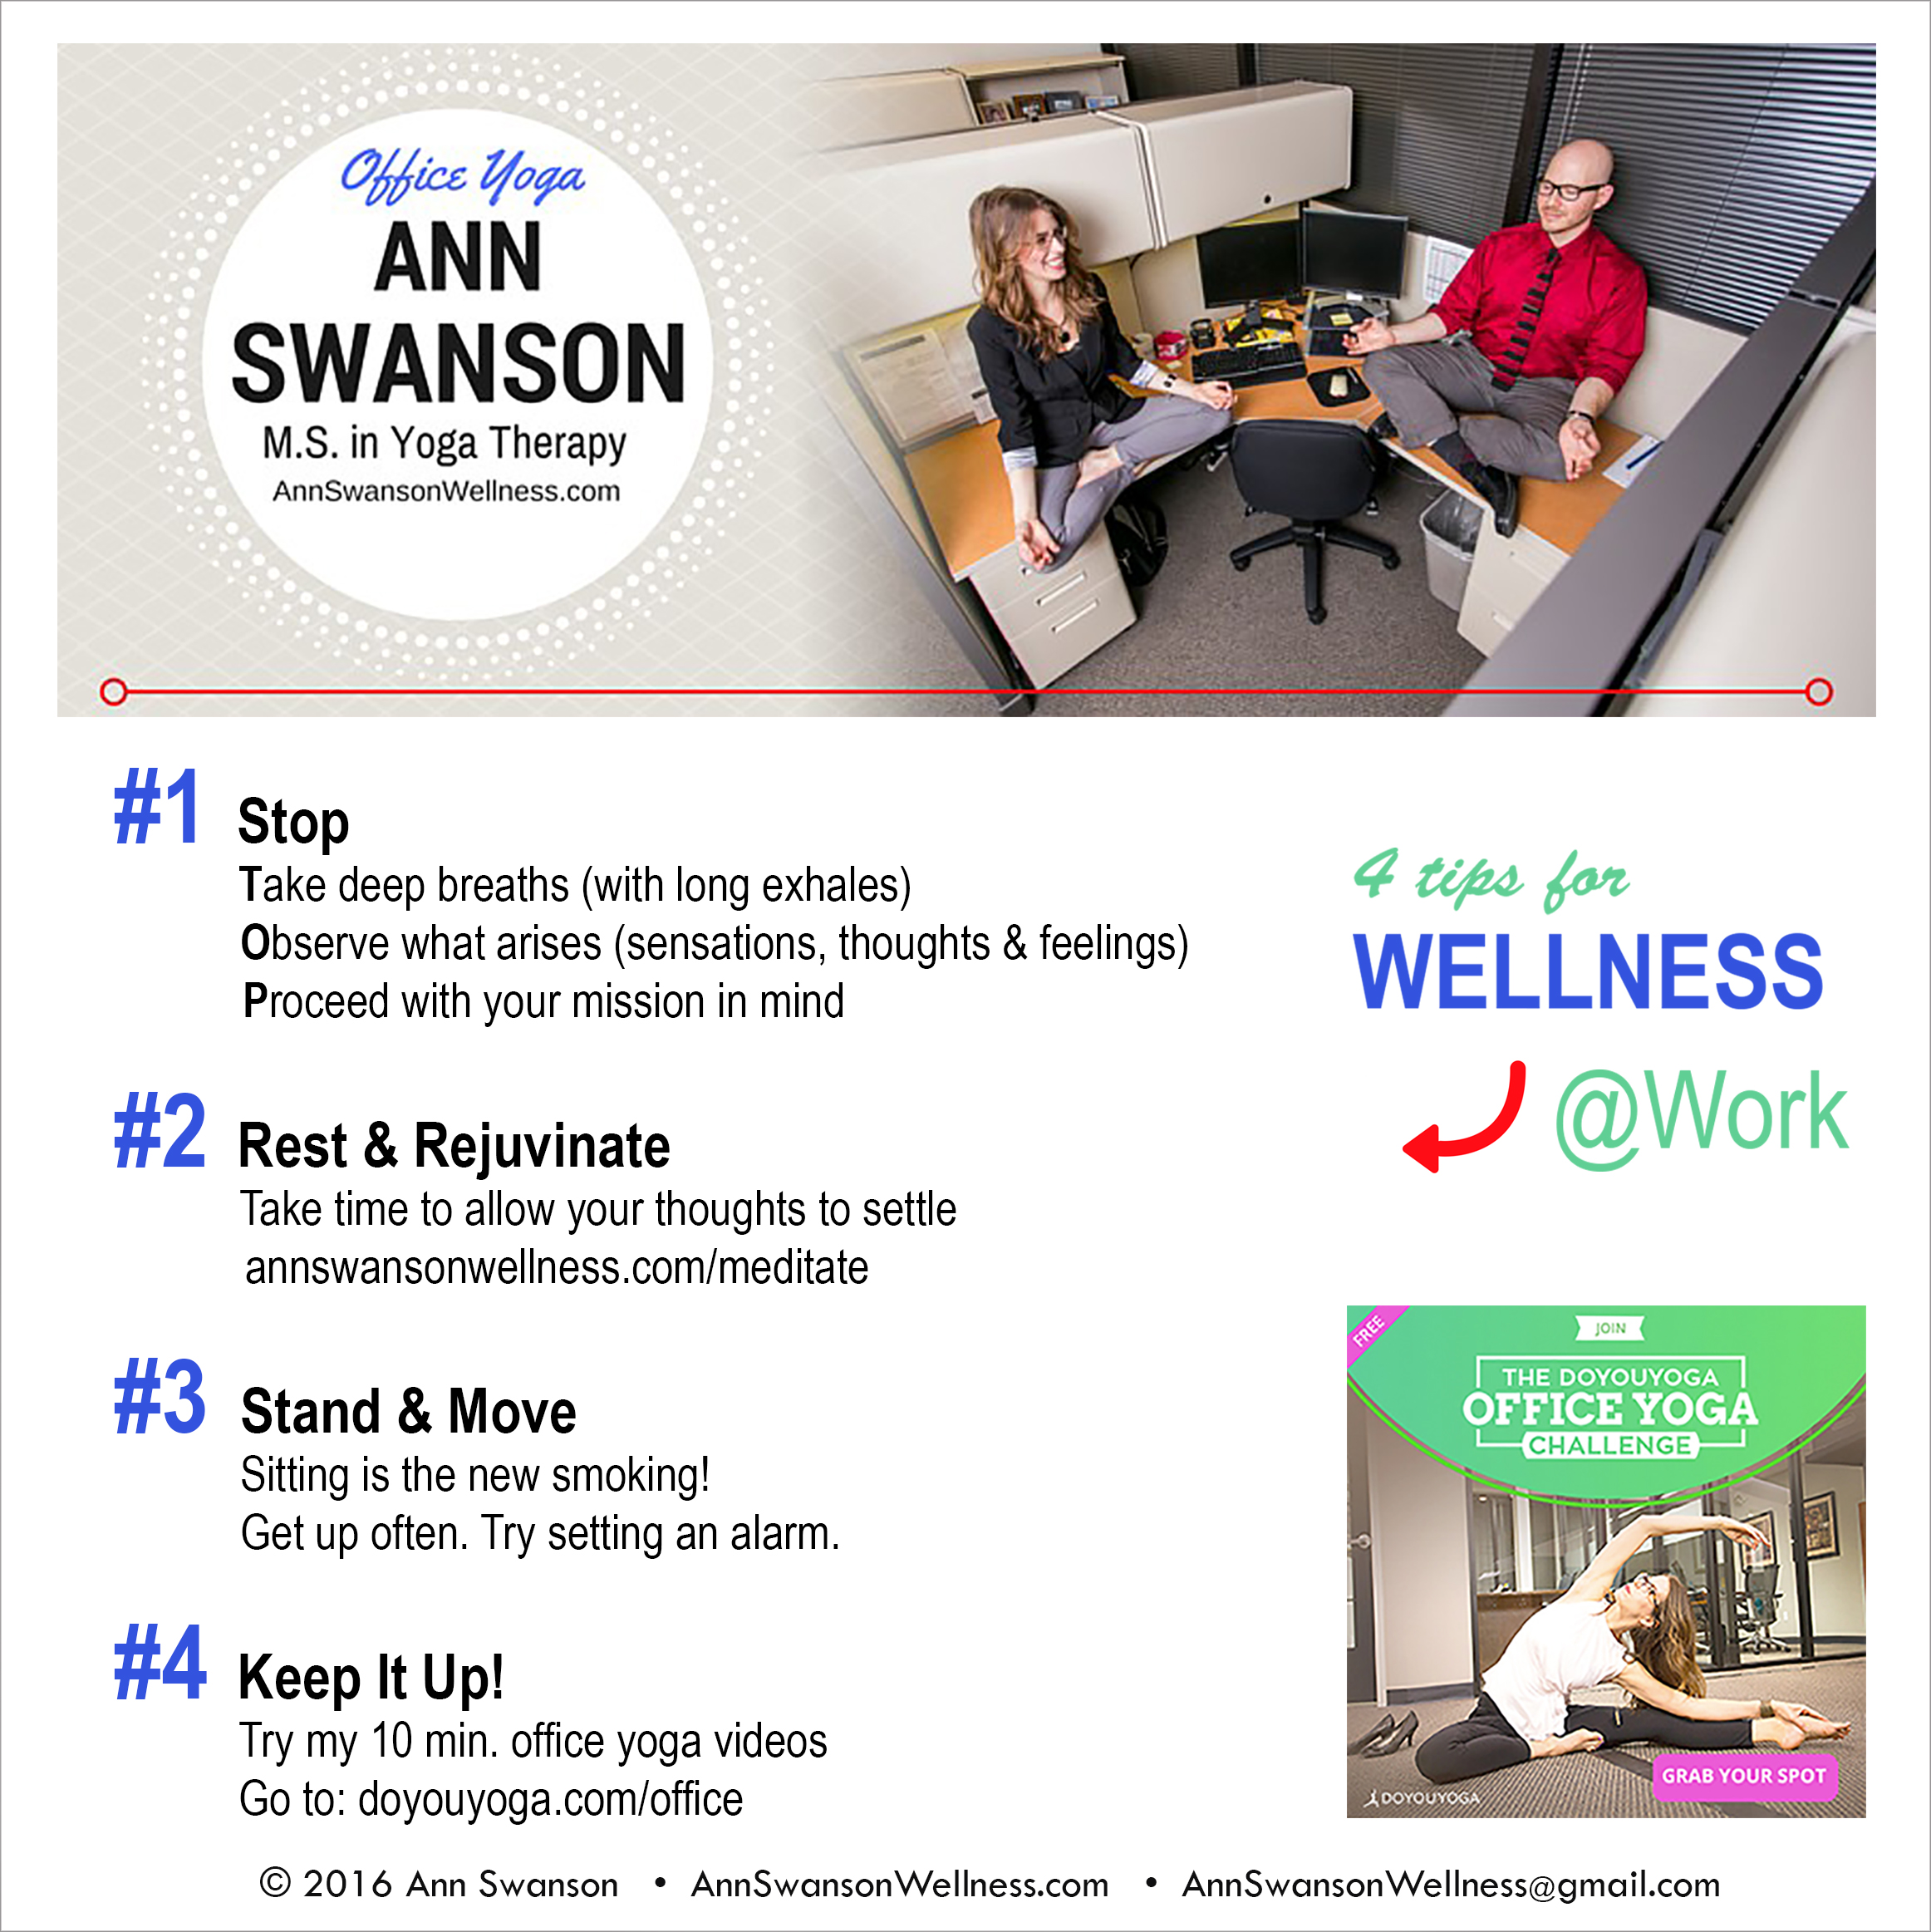 office-yoga-ann-swanson.jpg